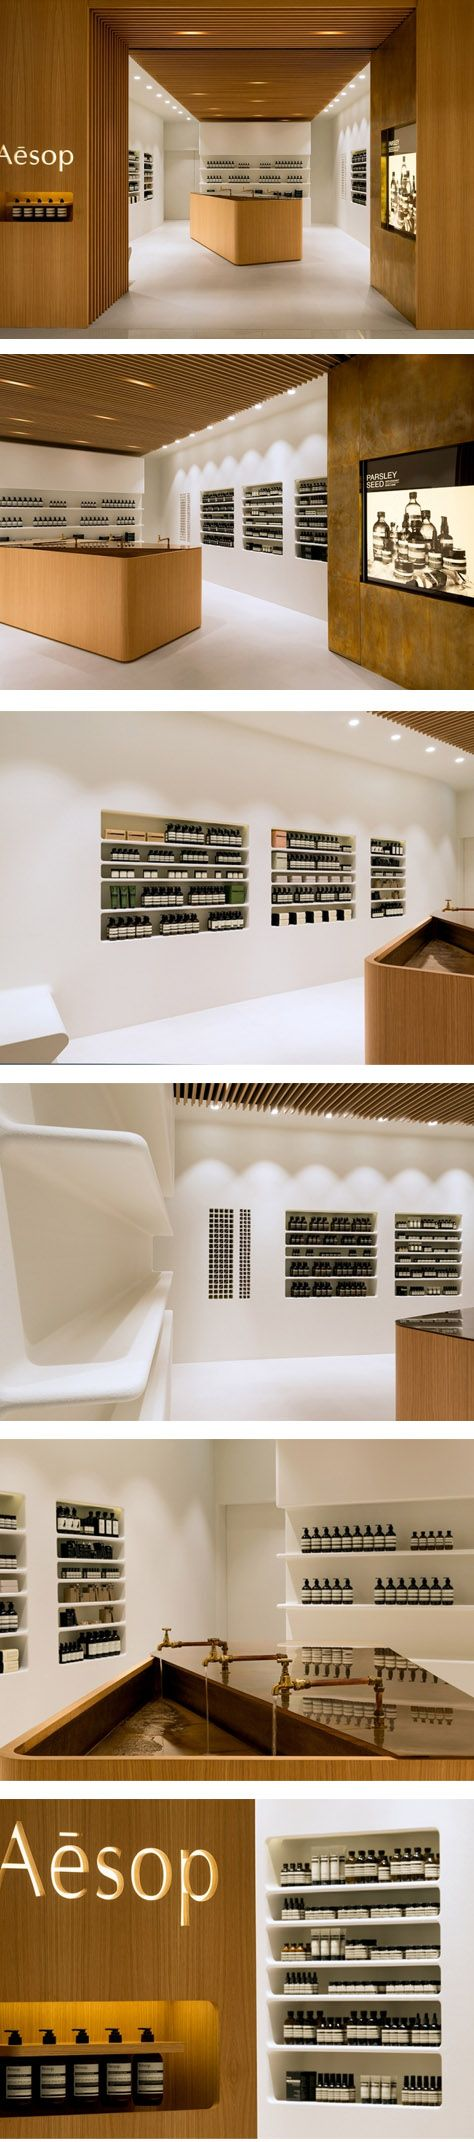 Aesop store at Elements, Hong Kong.